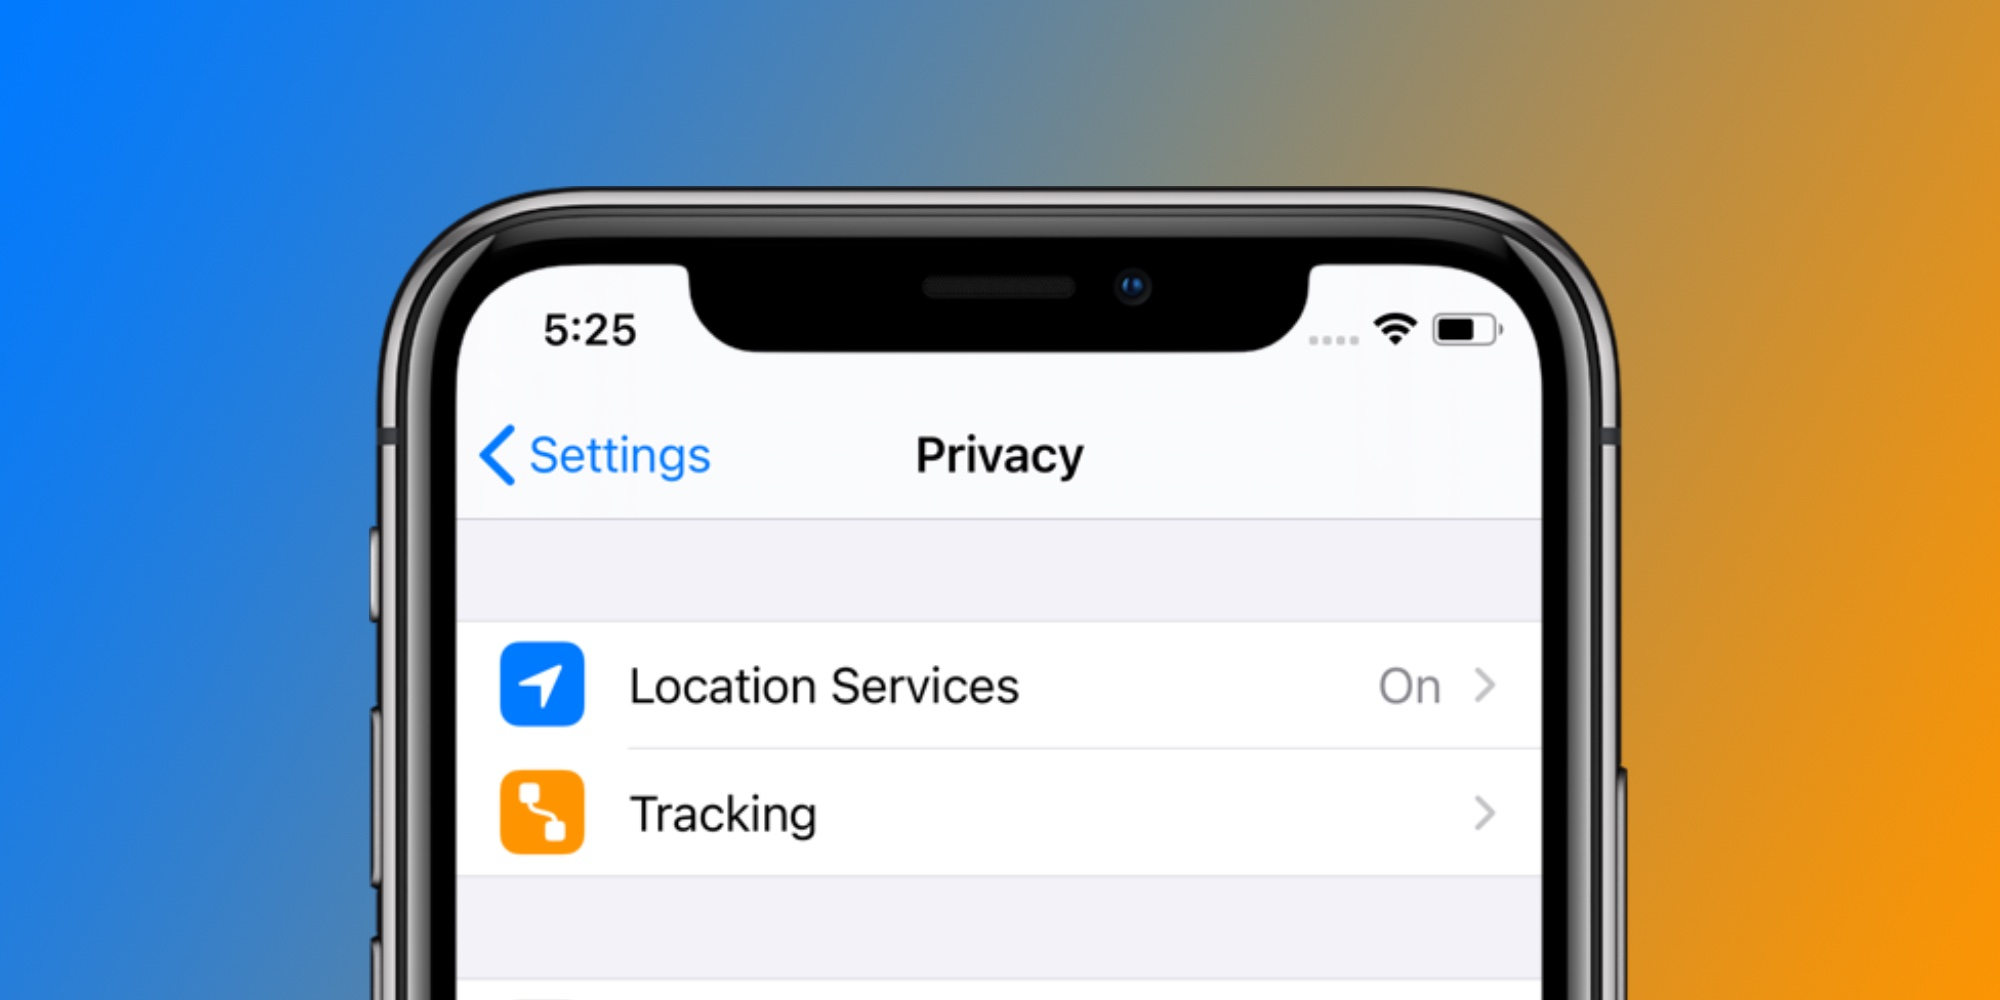 Apple doubles down on upcoming iOS 14 privacy features, slams Facebook for collecting 'as much data as possible'